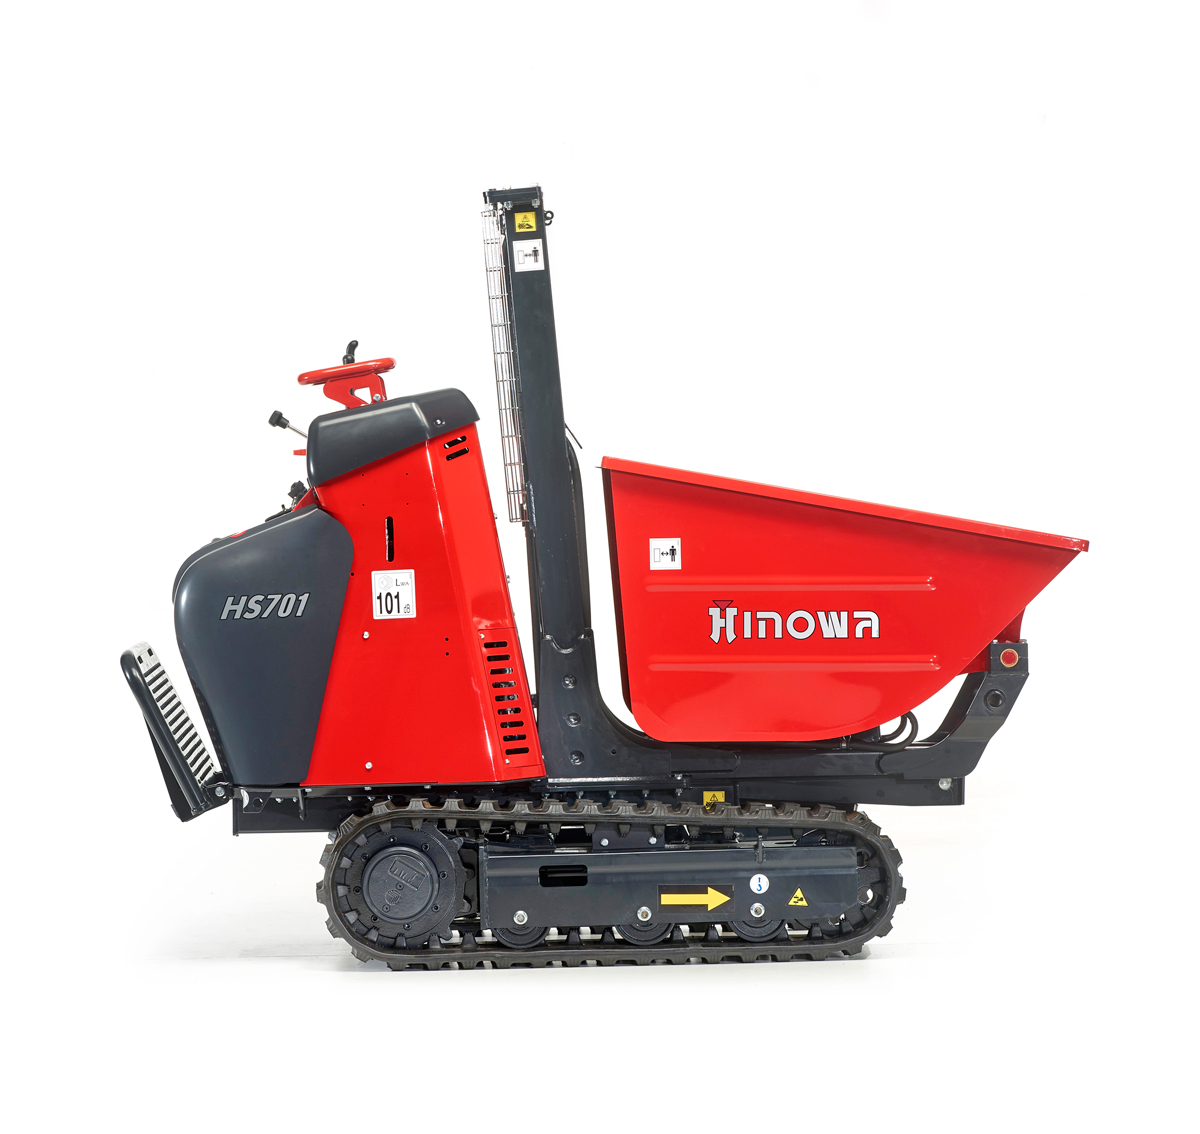 Minidumper HS701 high-tip dumper bed